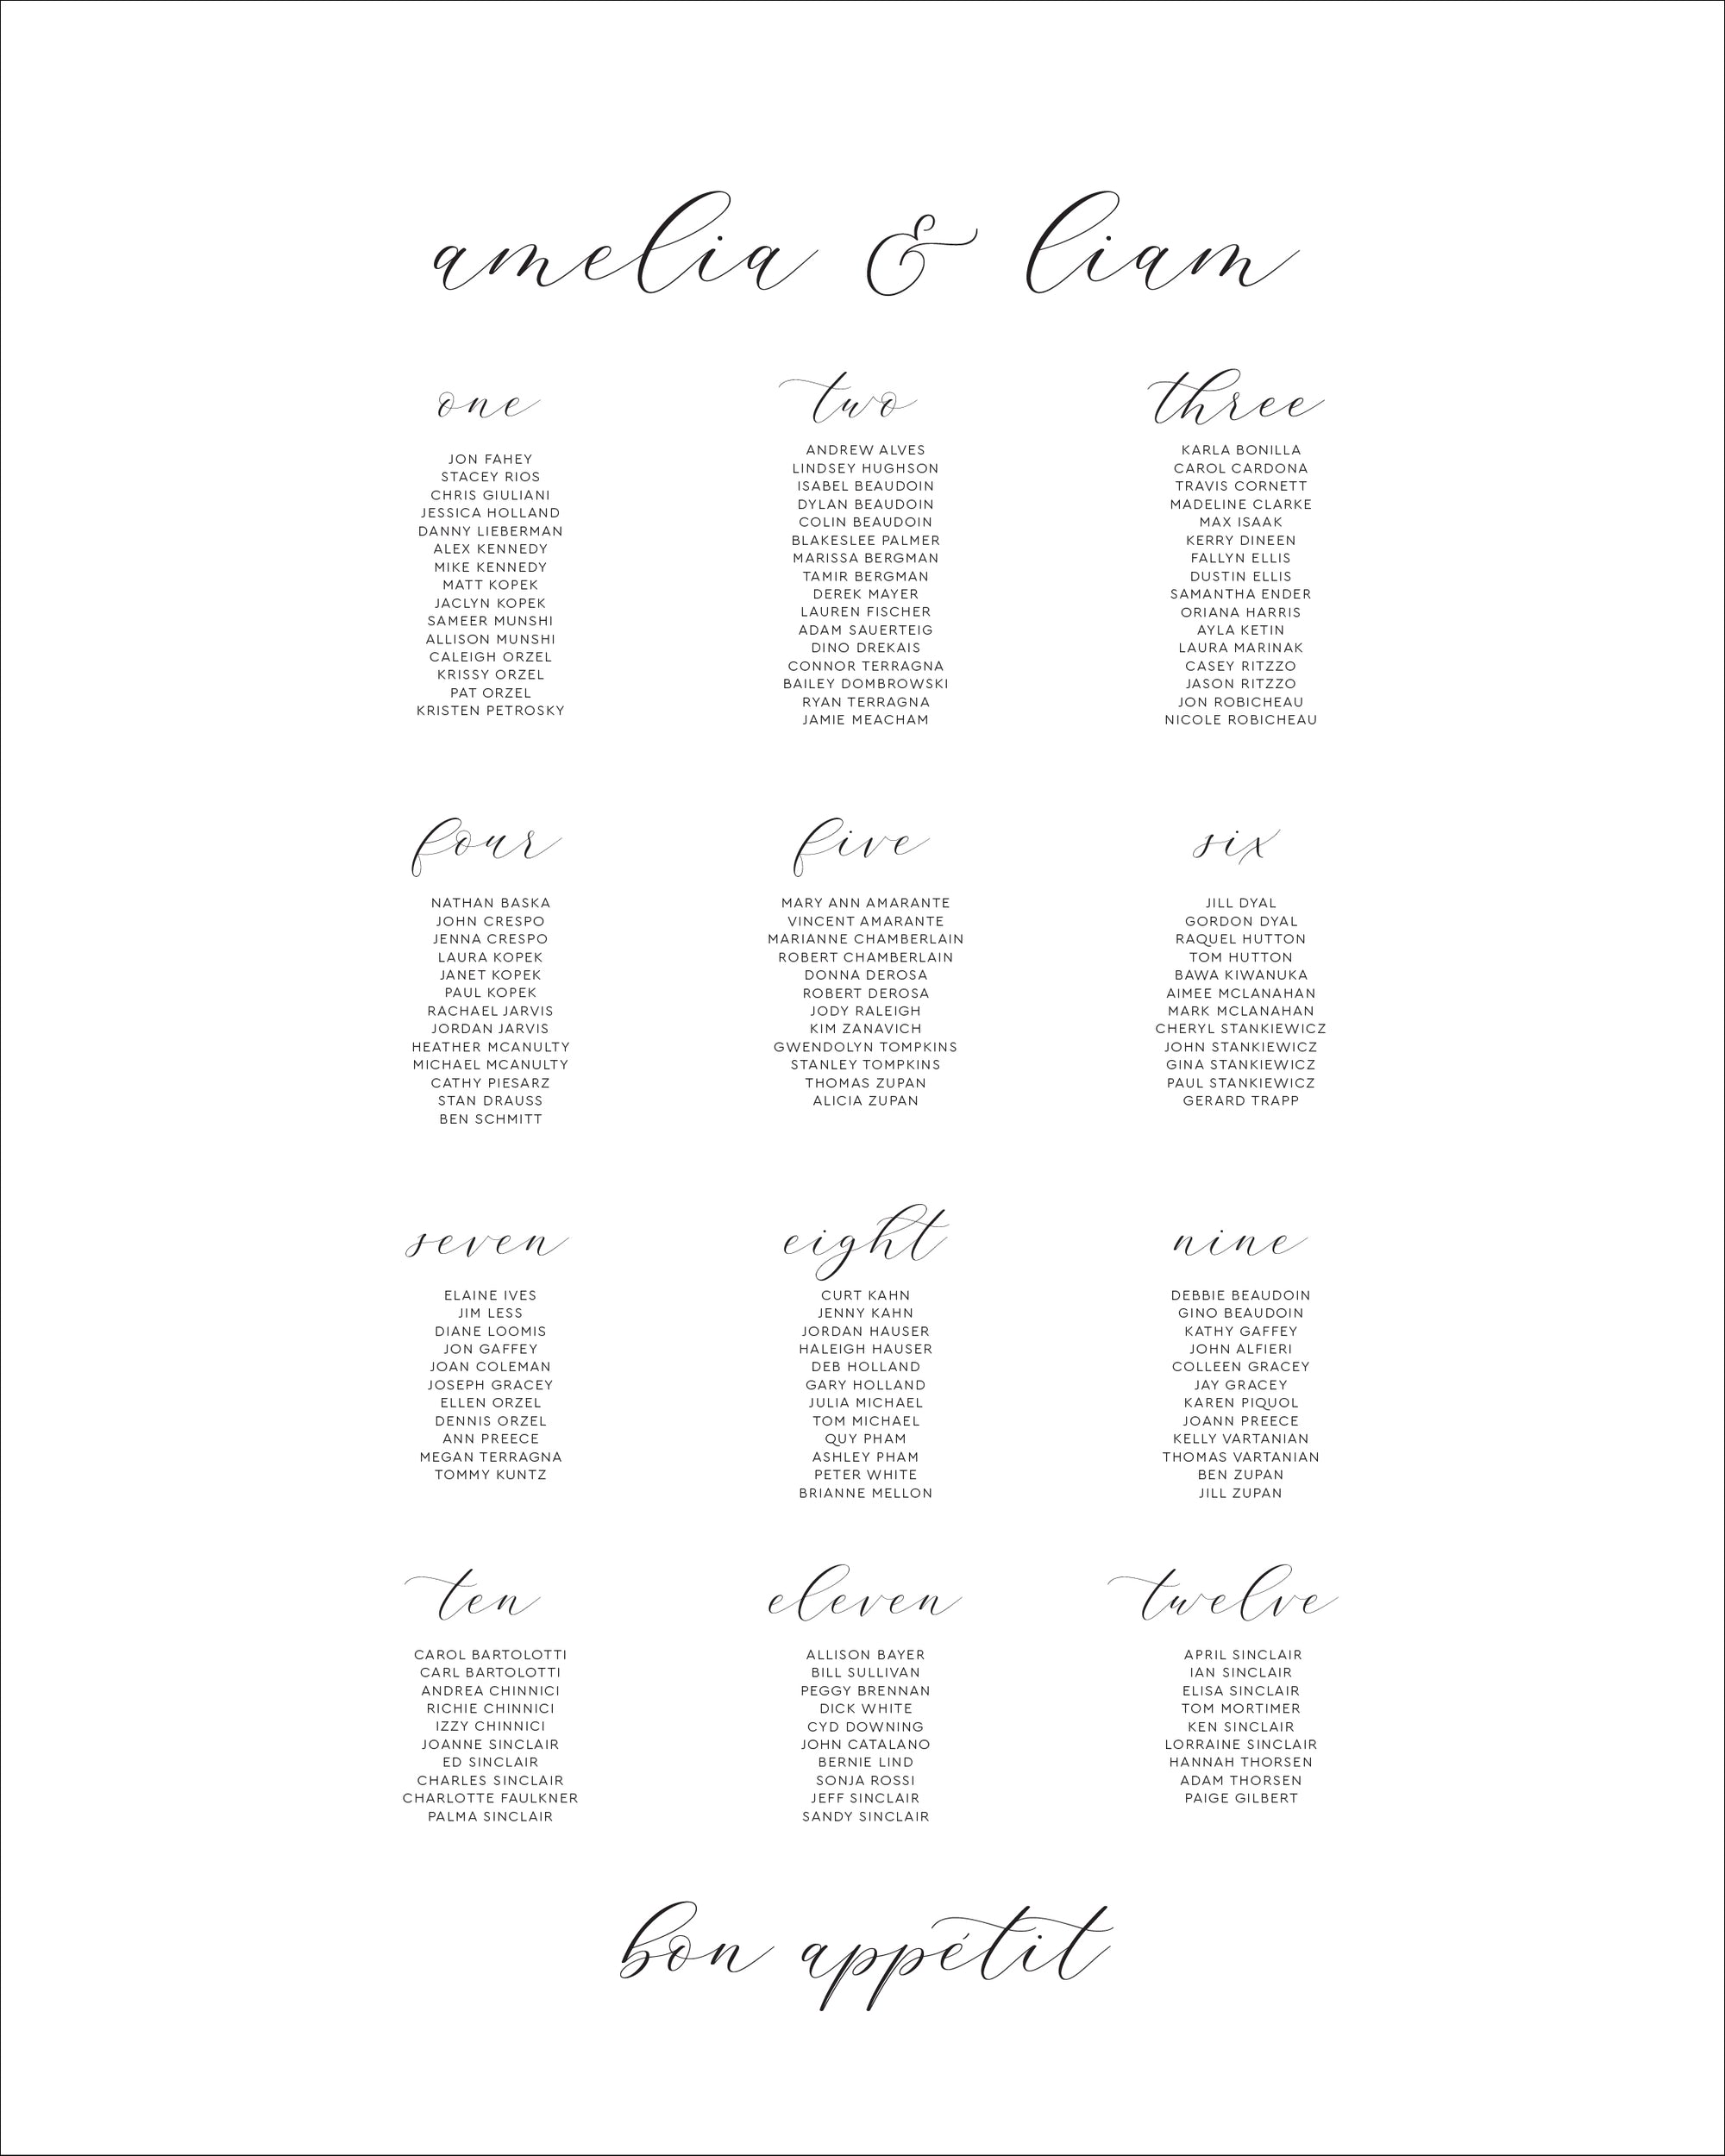 Wedding Reception Seating Chart | The Amelia